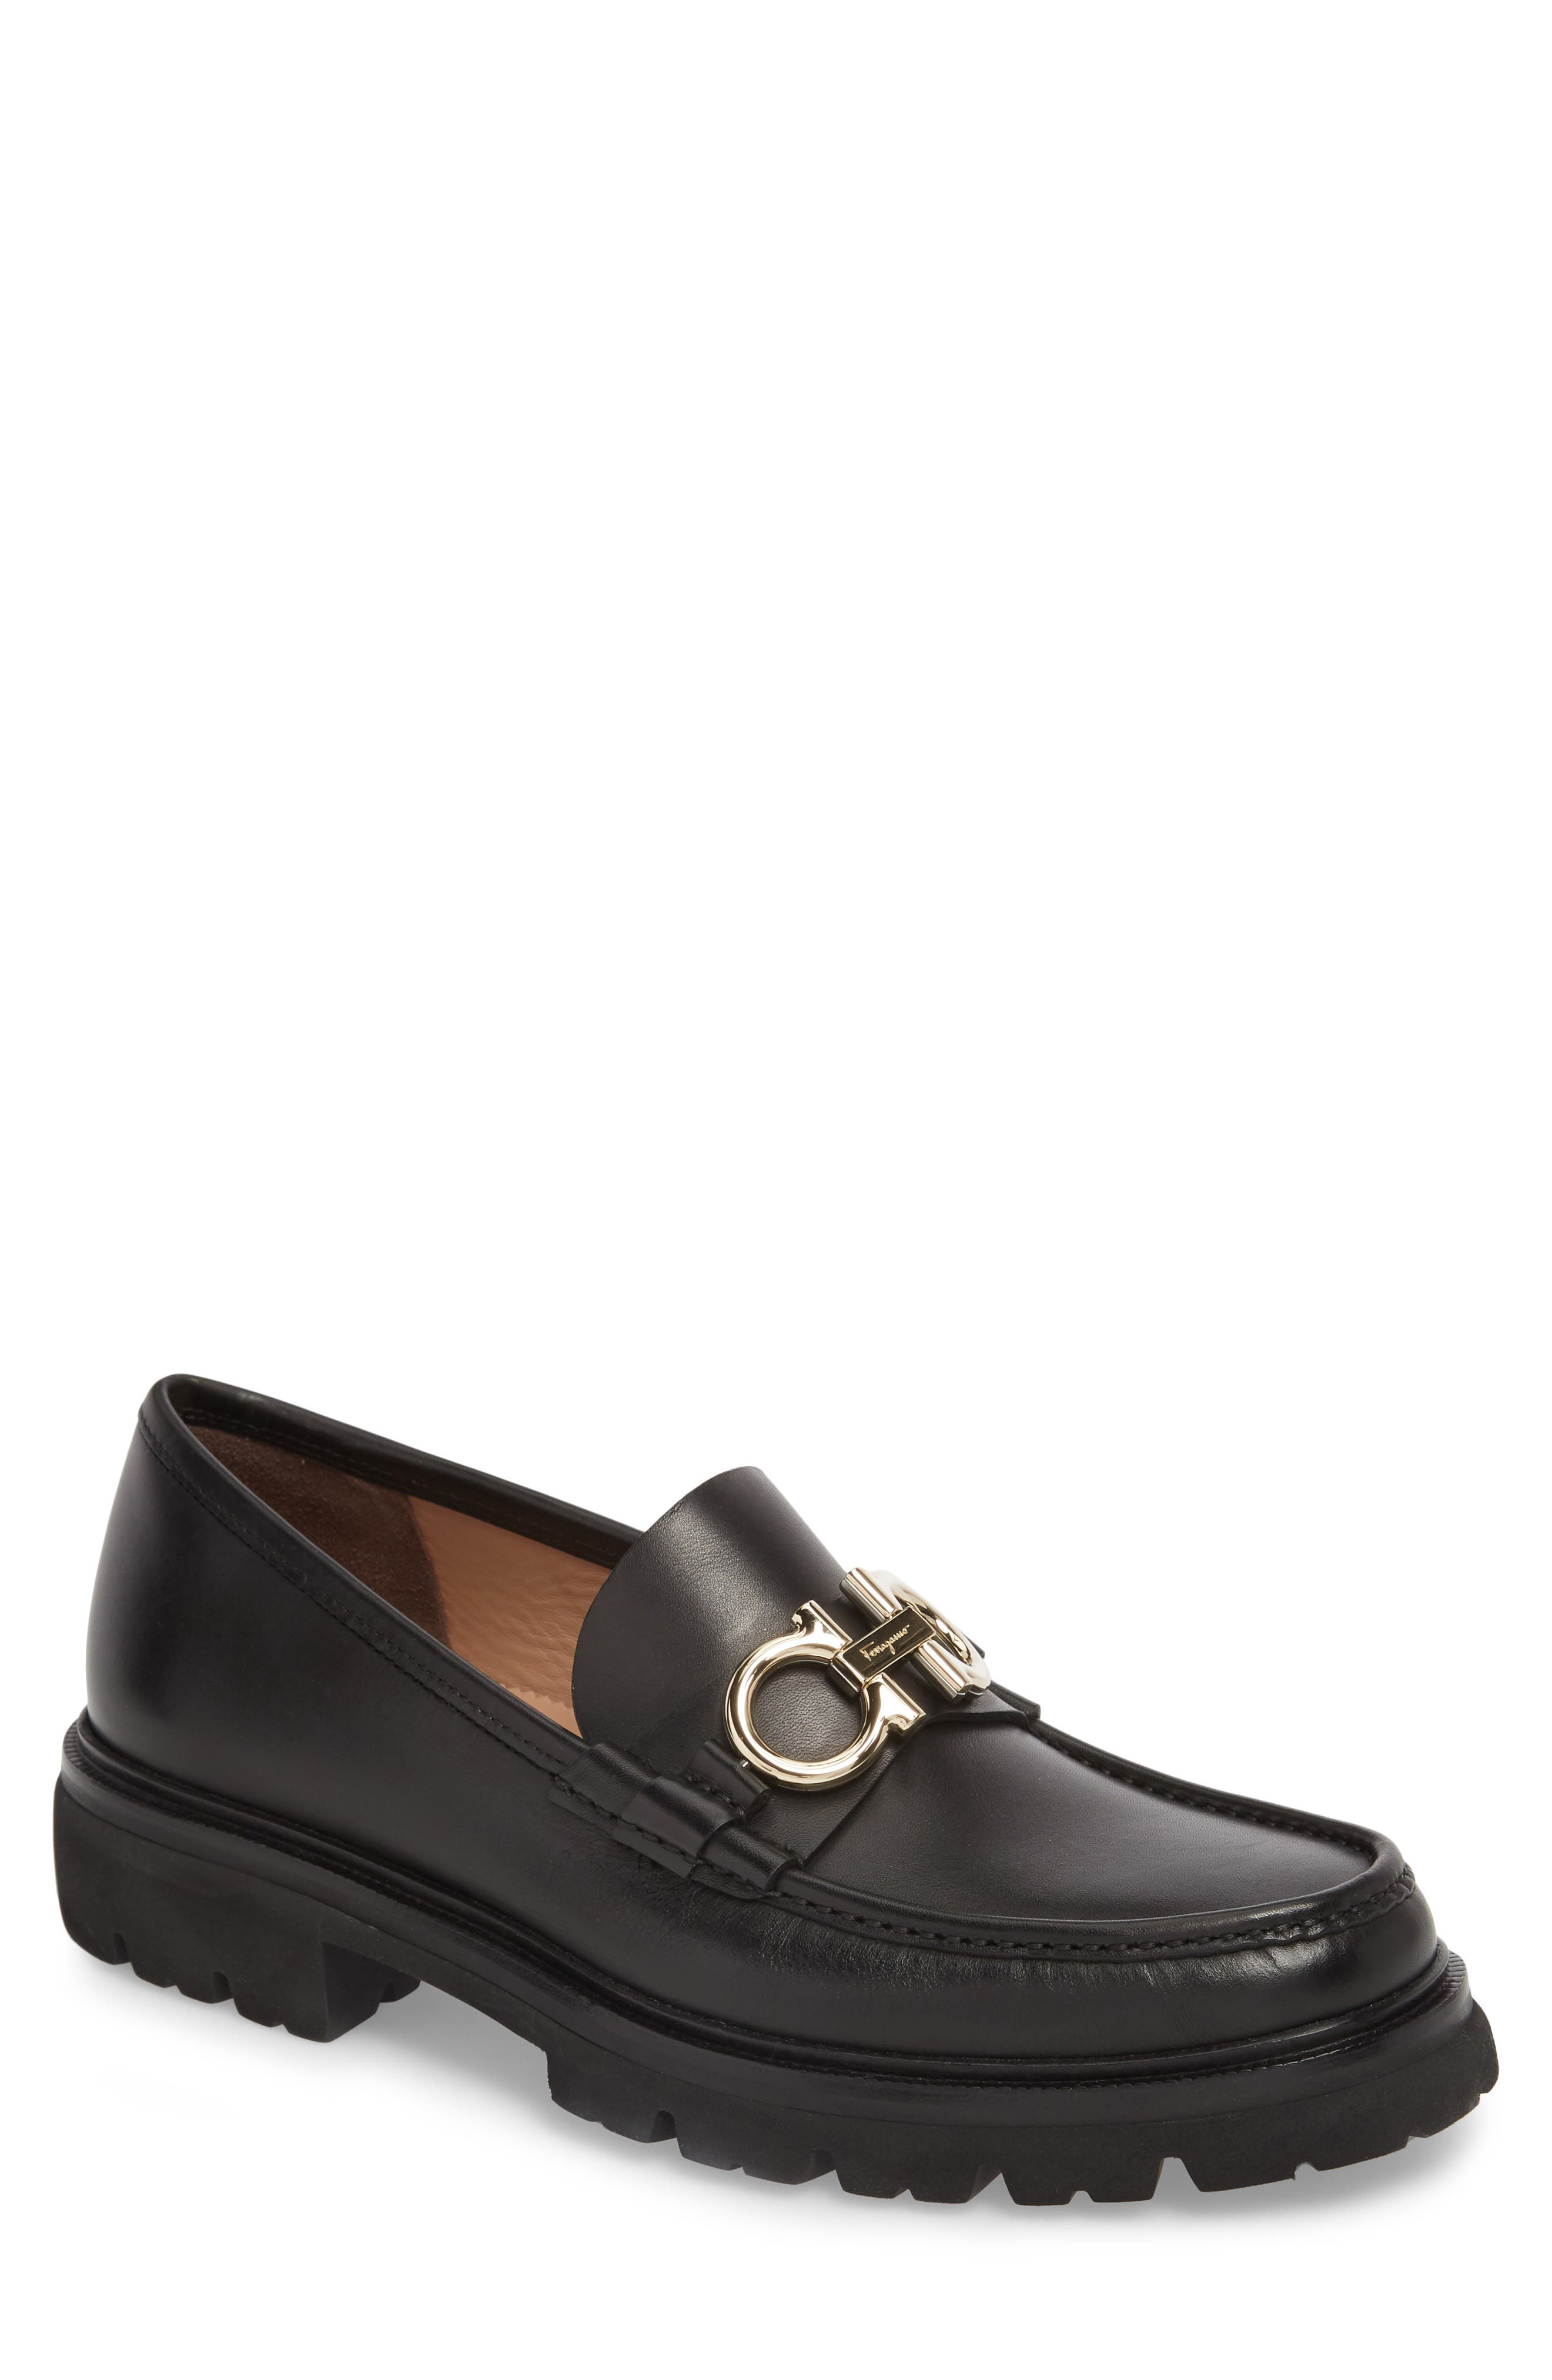 Bleecker Reversible Bit Lugged Loafer,                         Main,                         color, NERO LEATHER